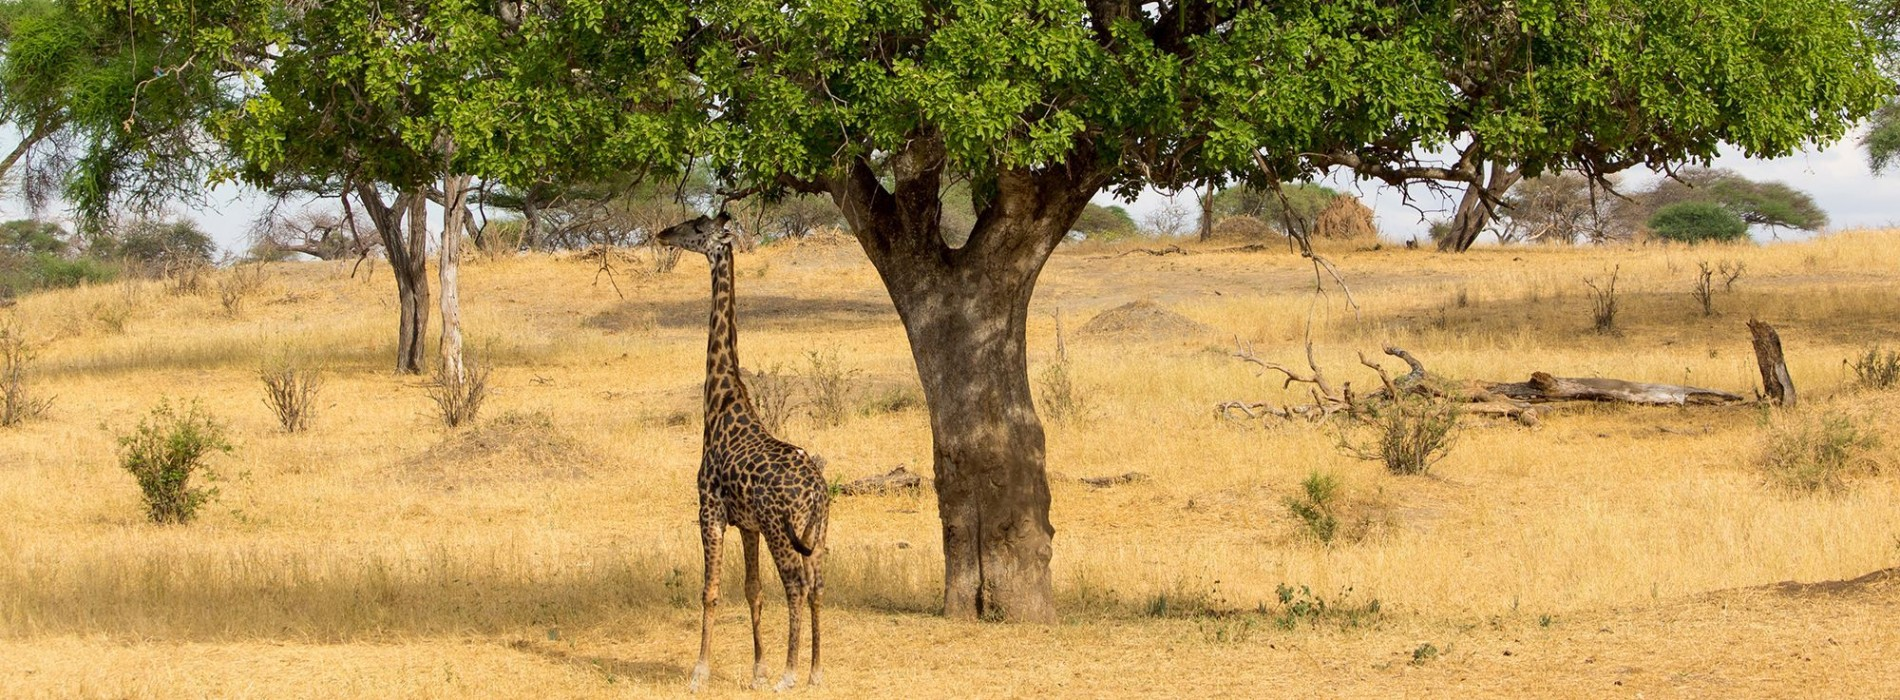 Giraffe taking shade from the African sun